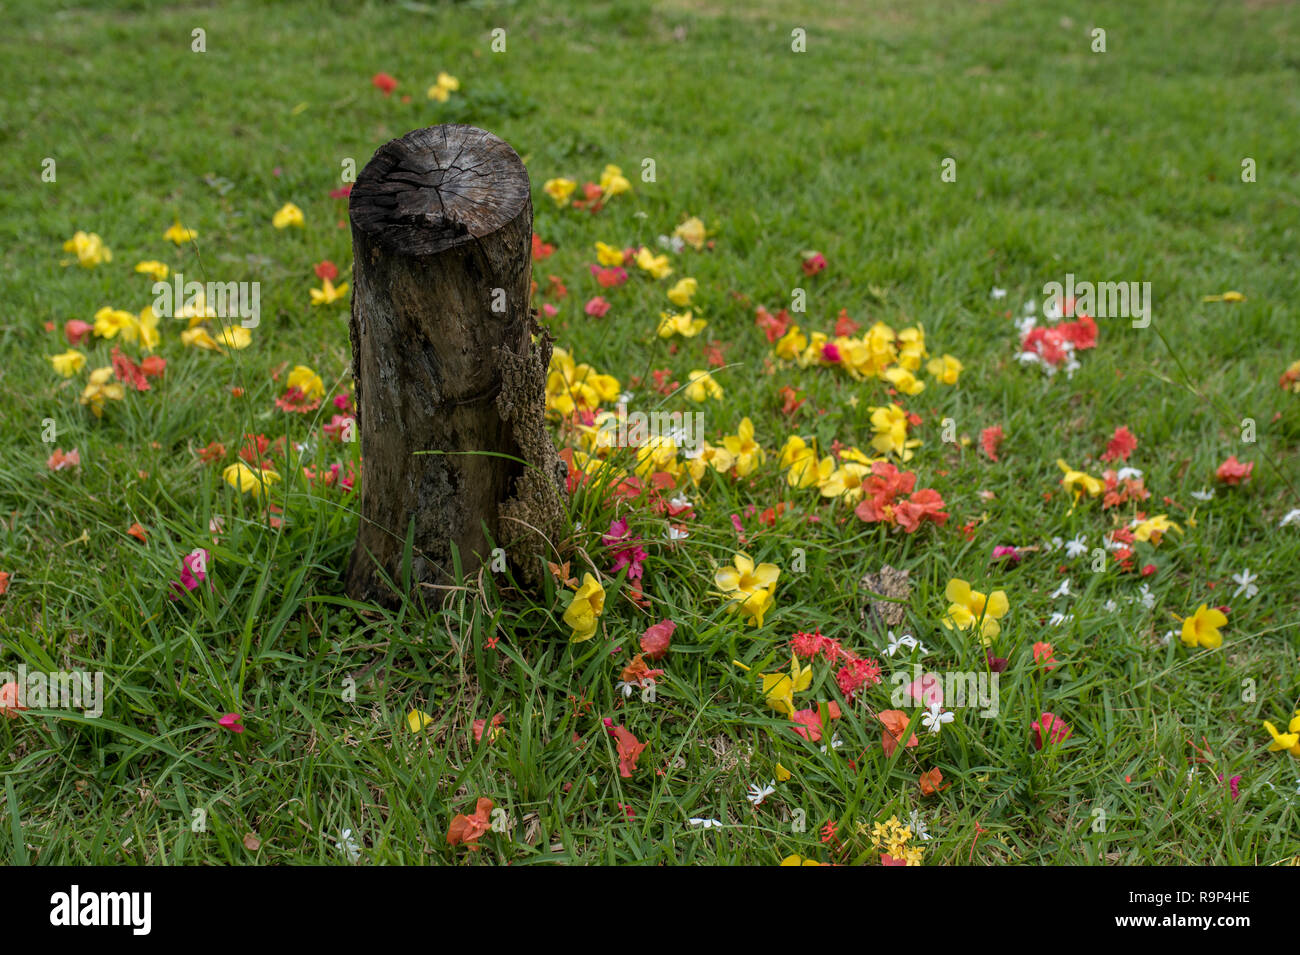 sprinkled flowers on the stone - Stock Image